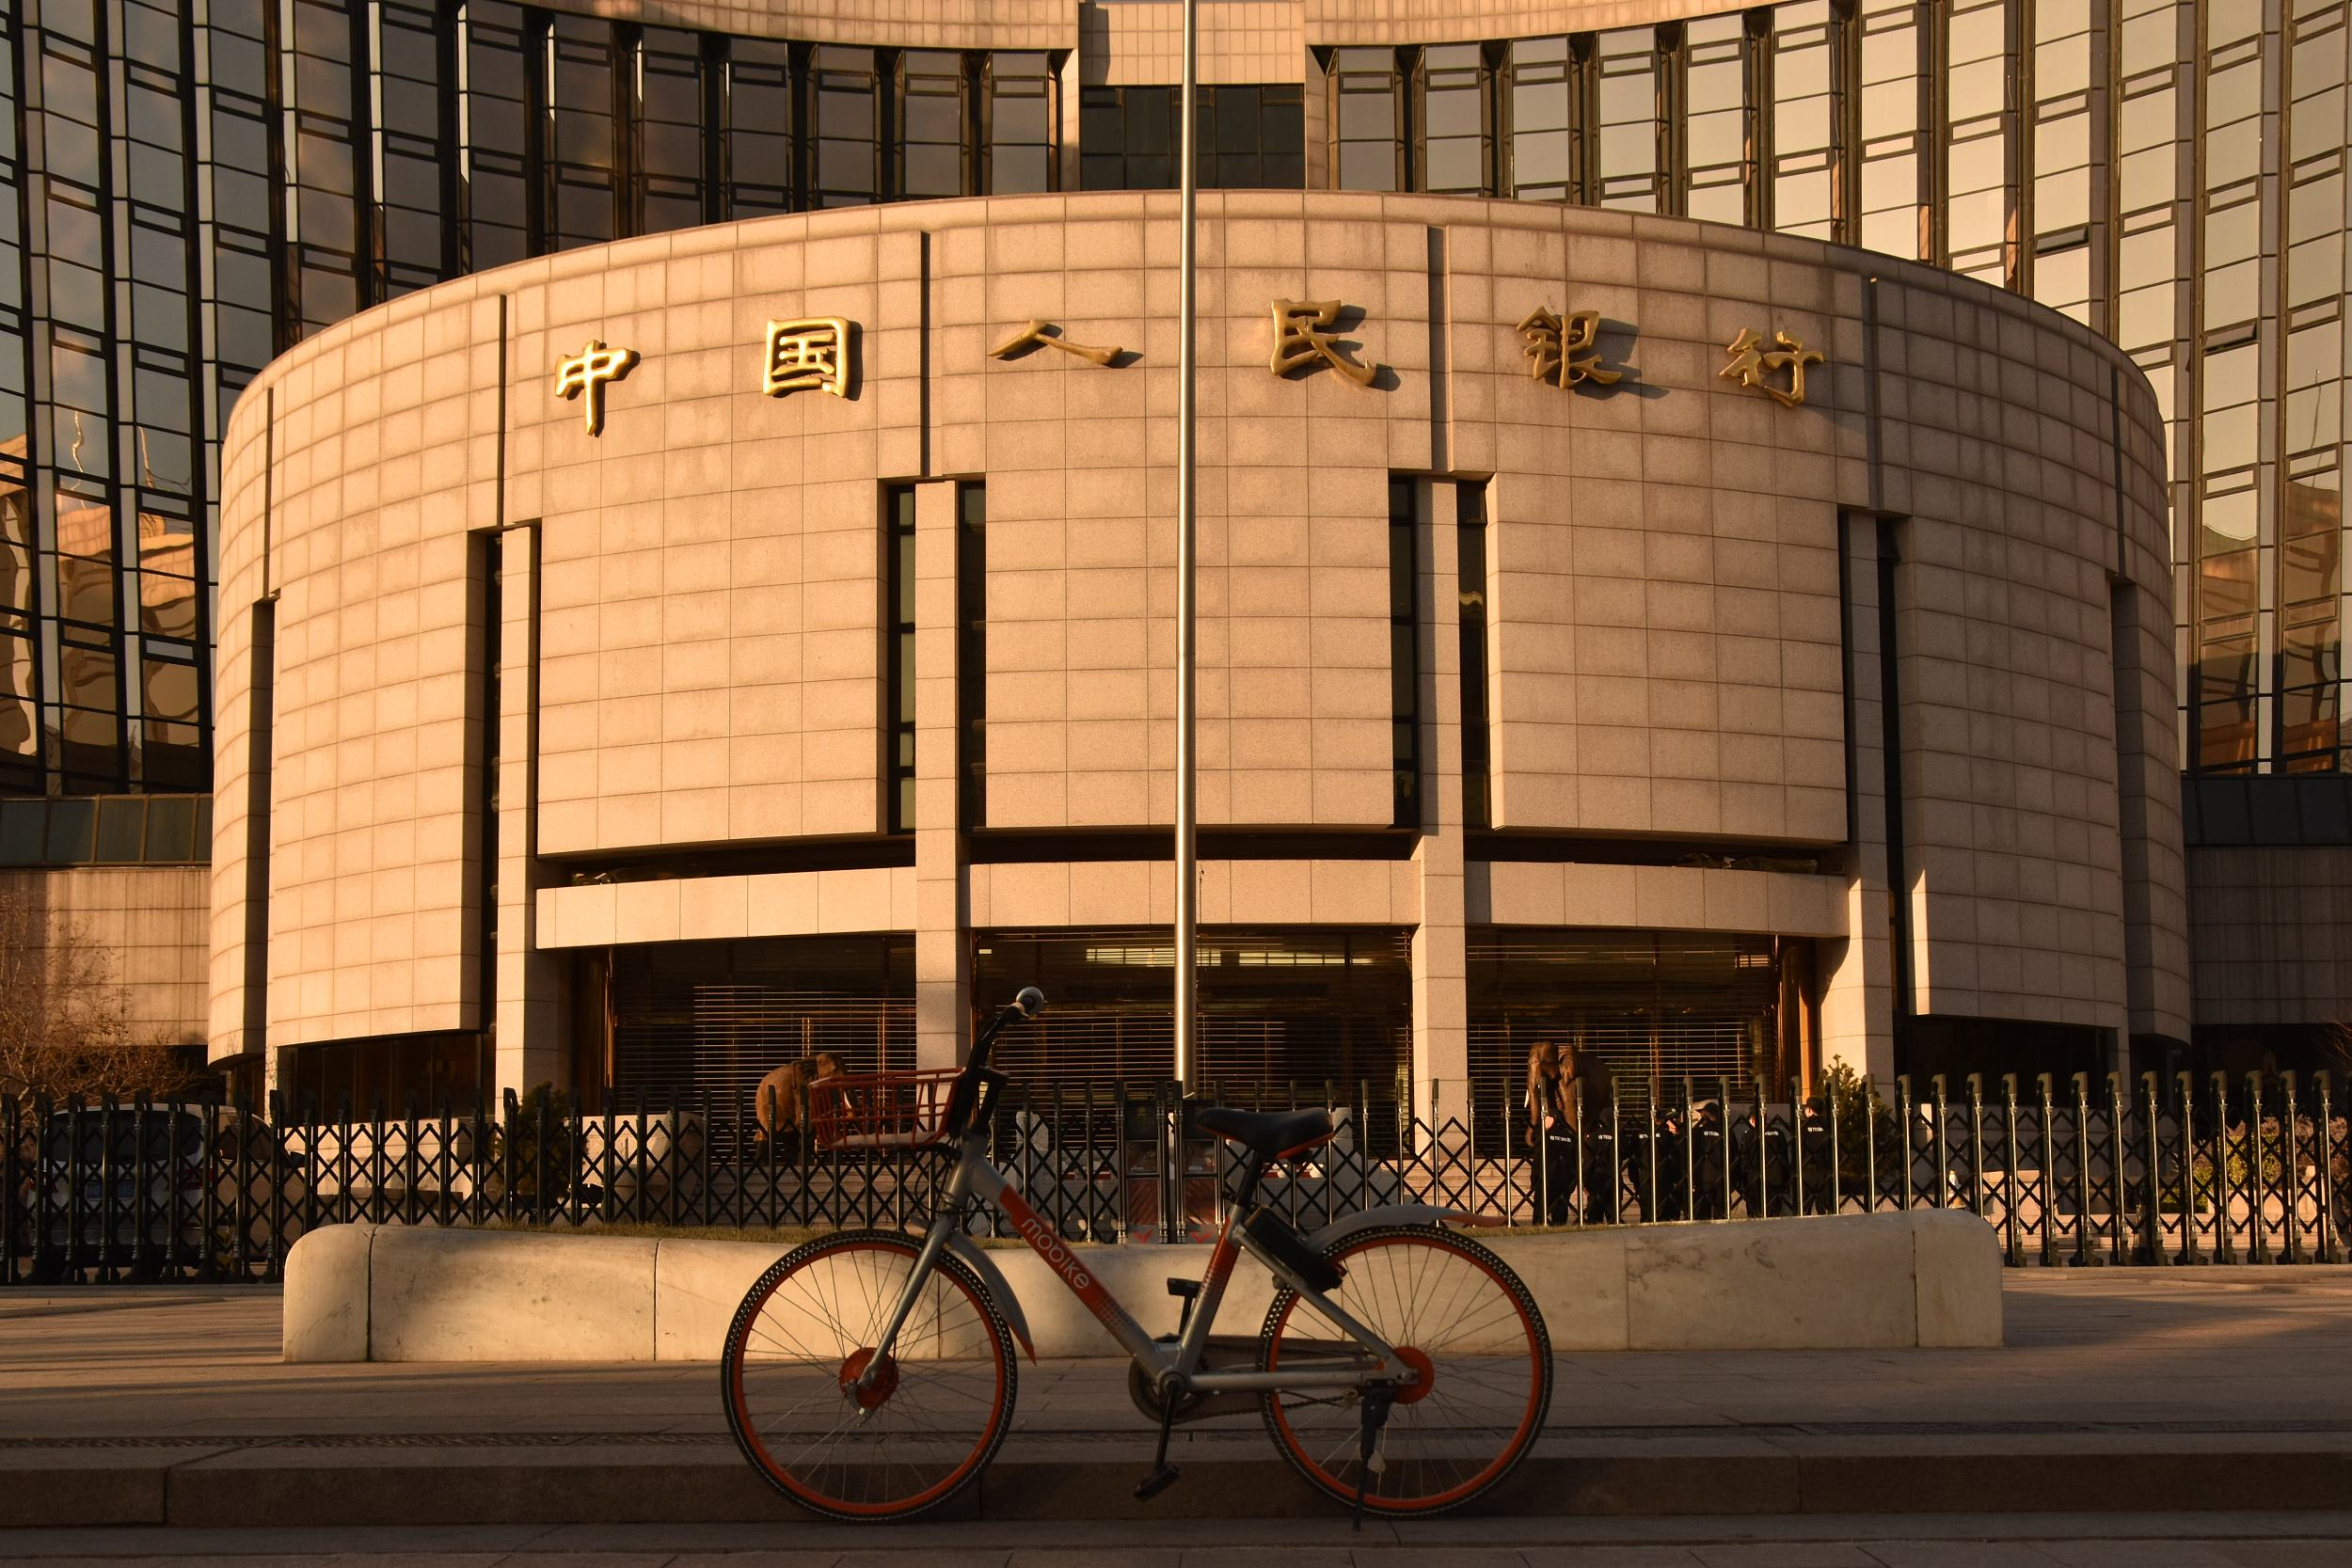 The People's Bank of China in Beijing on Jan. 28, 2018. Photo: VCG